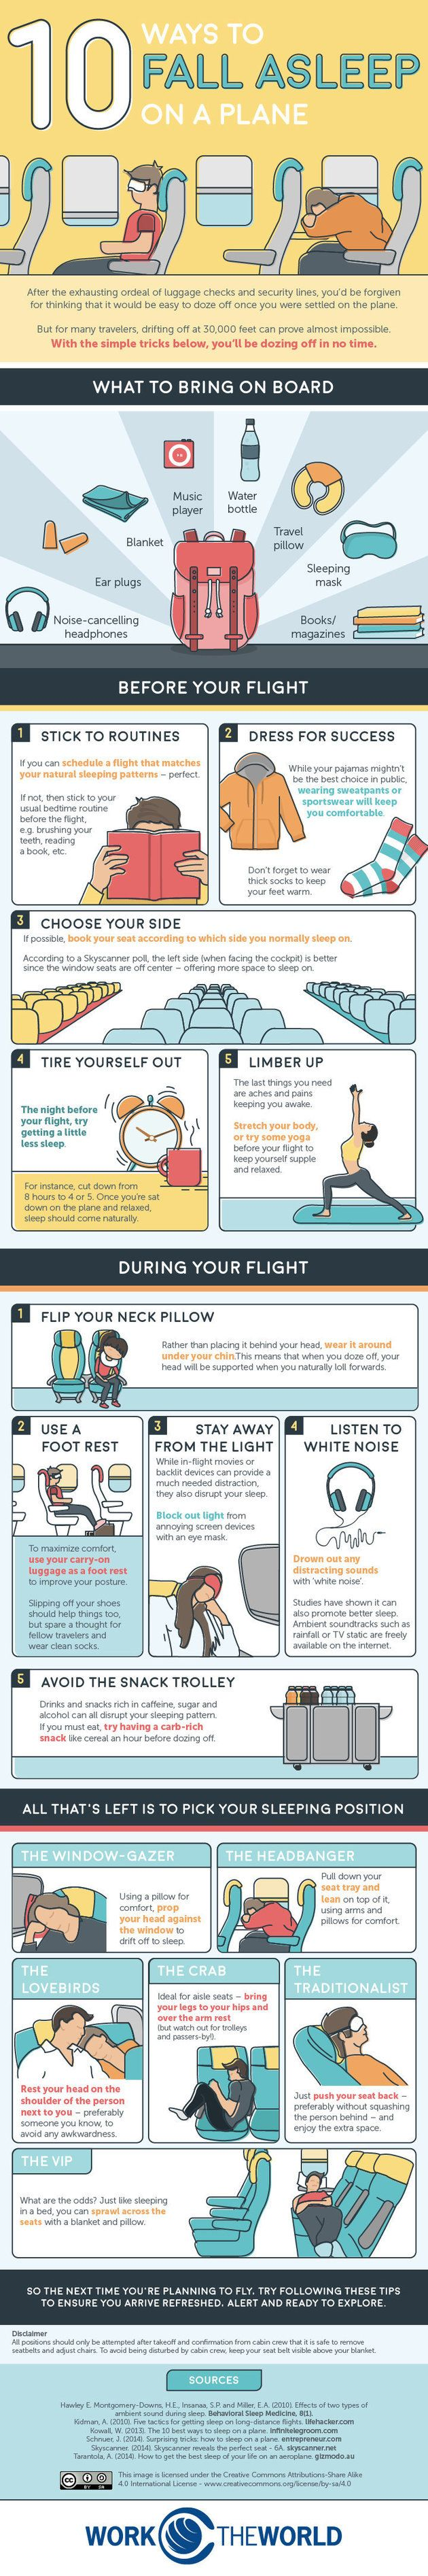 10 tricks to help you fall asleep on a plane